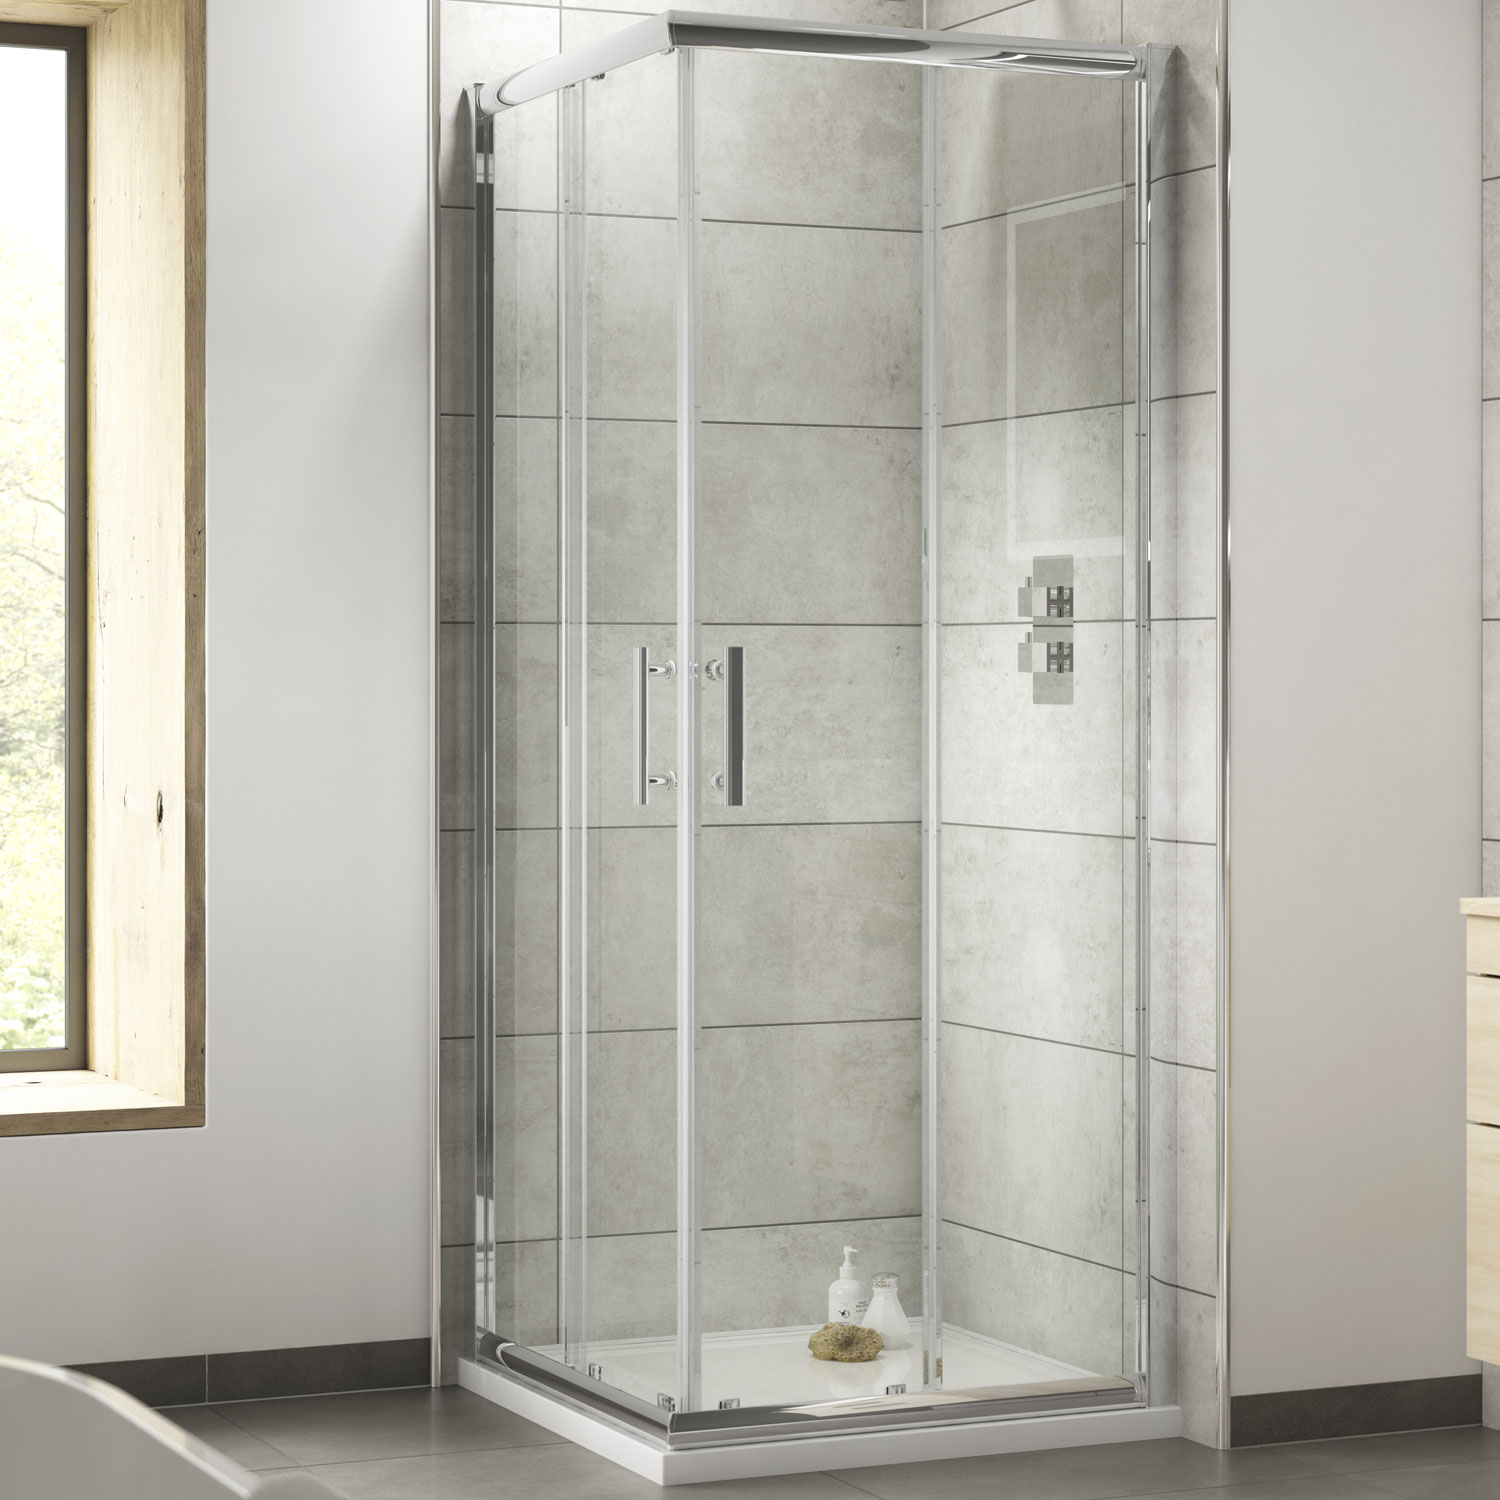 Premier Pacific Corner Entry Shower Enclosure 760mm x 760mm - 6mm Glass-2